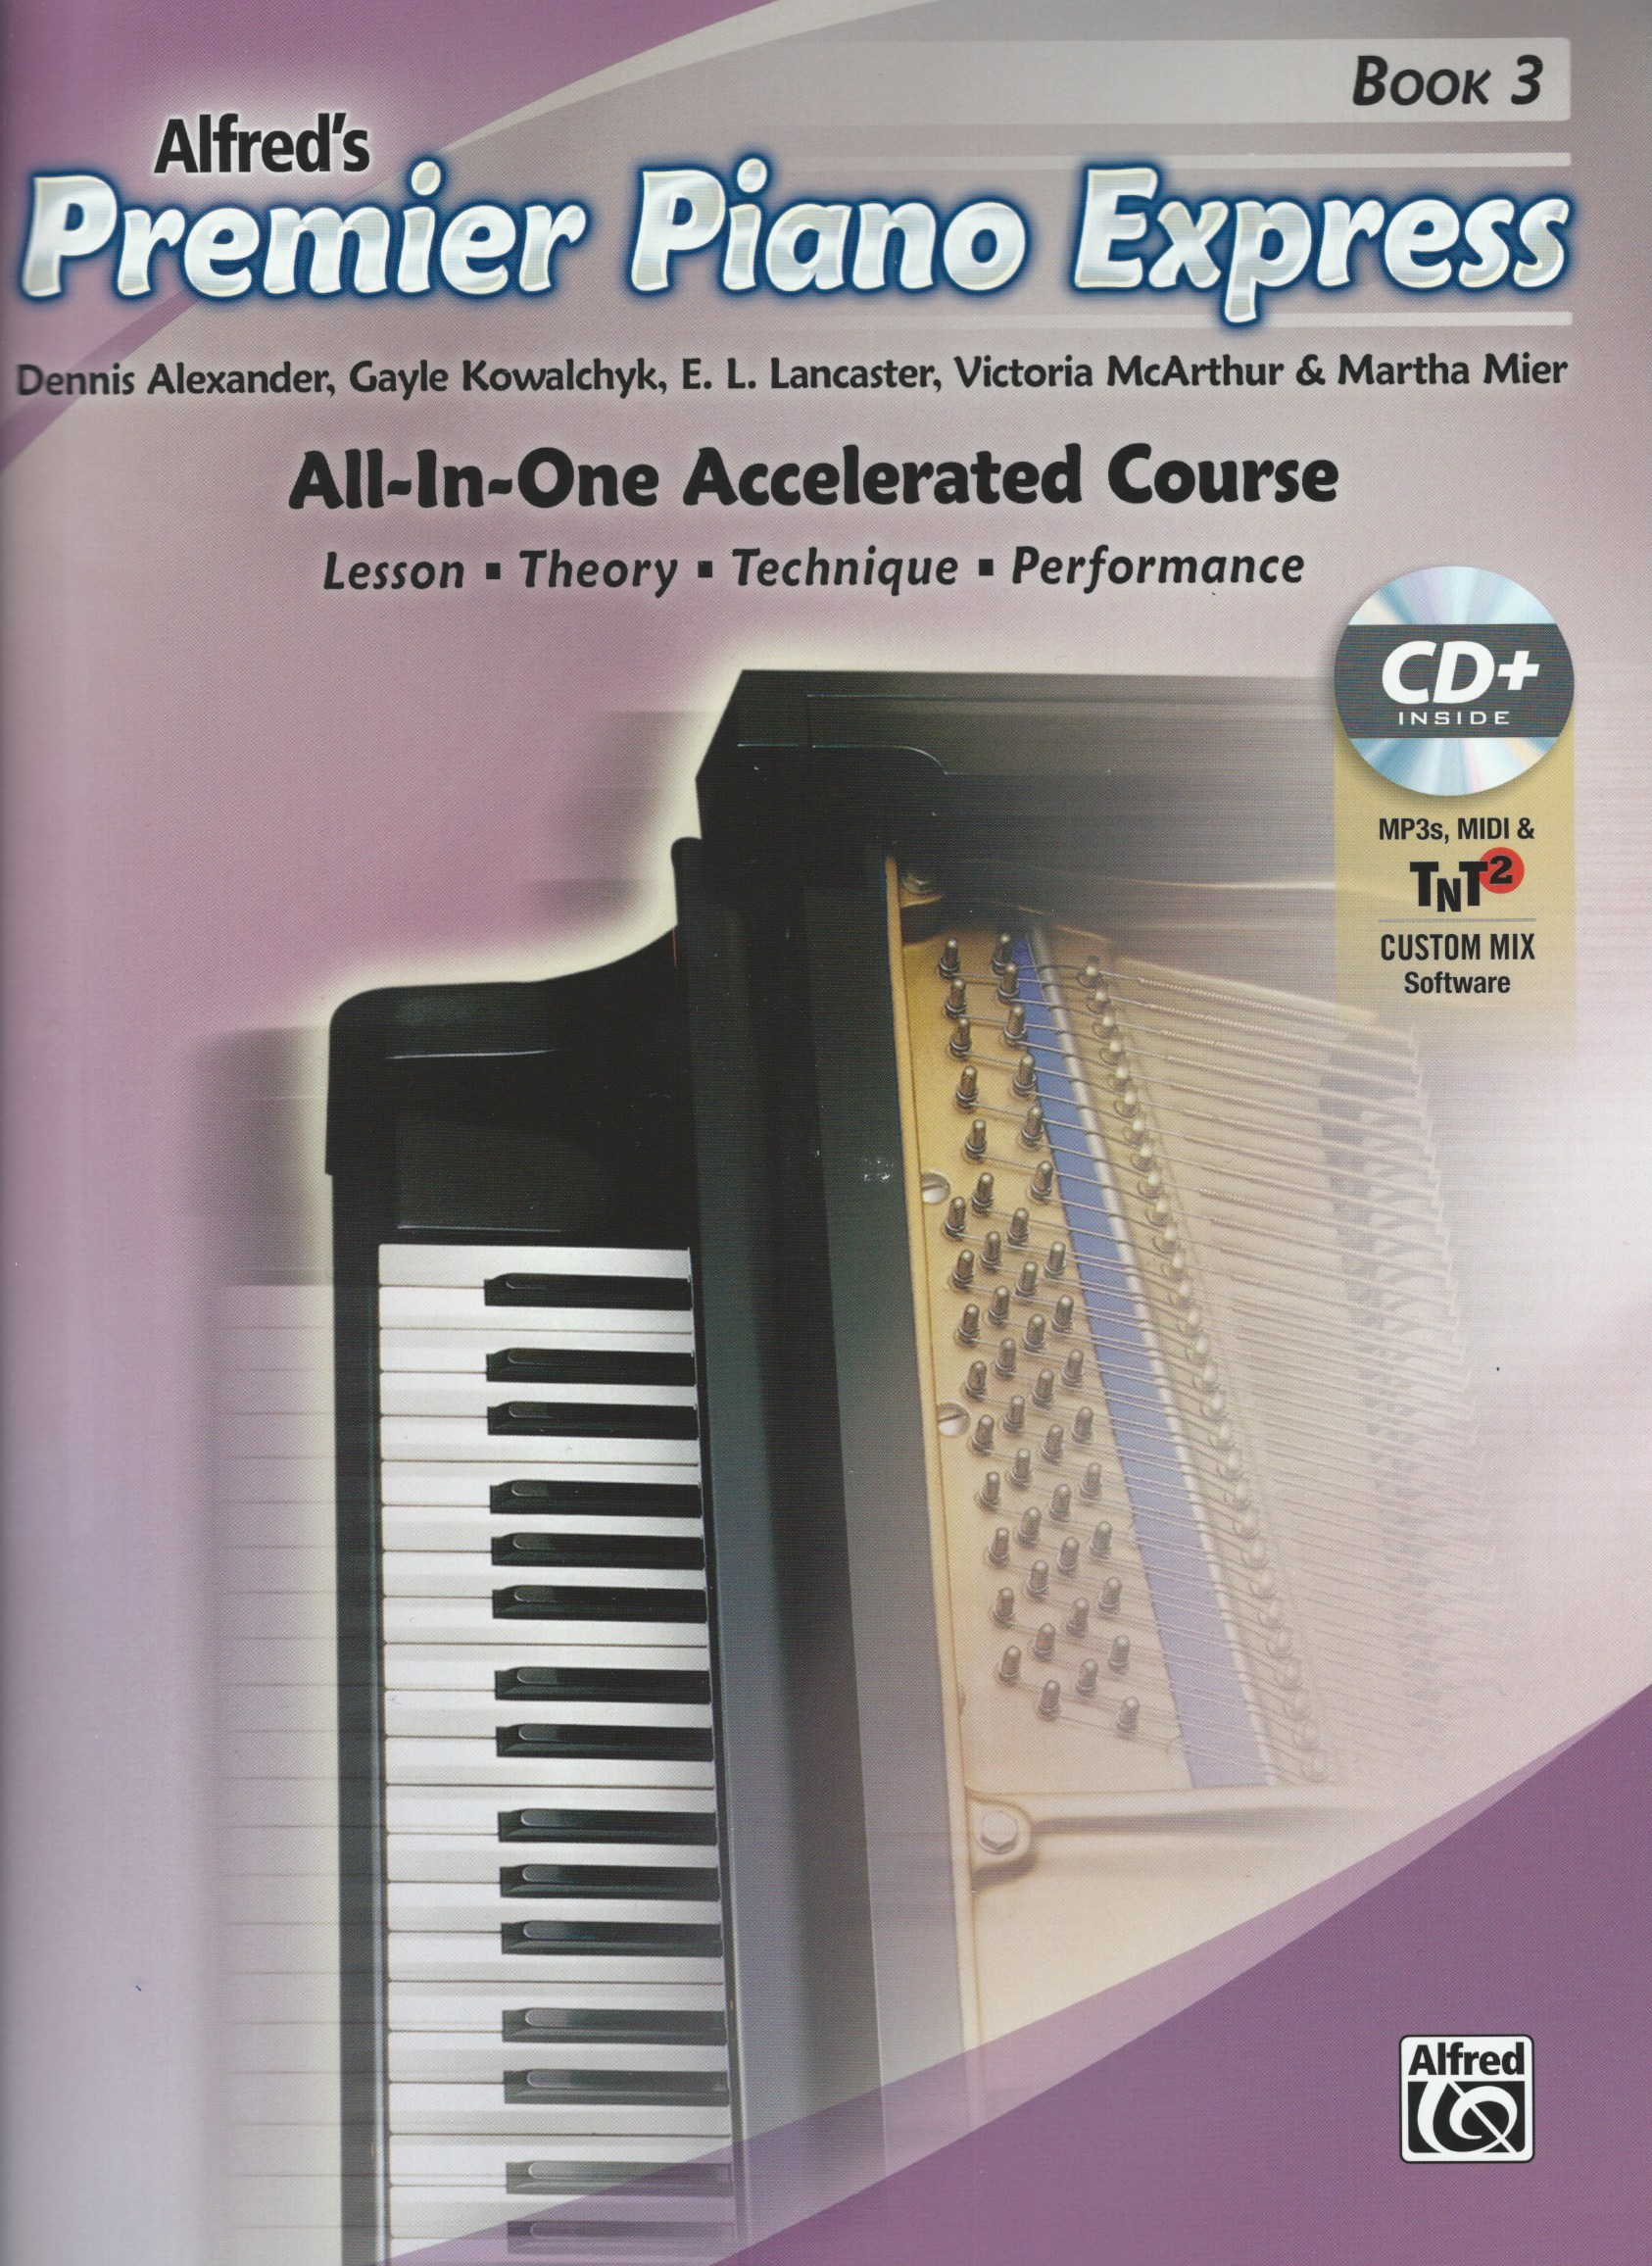 Premier Piano Express Is Designed For Students Who Need A Fast Paced Approach To Study Based On The Concepts And Music From Course